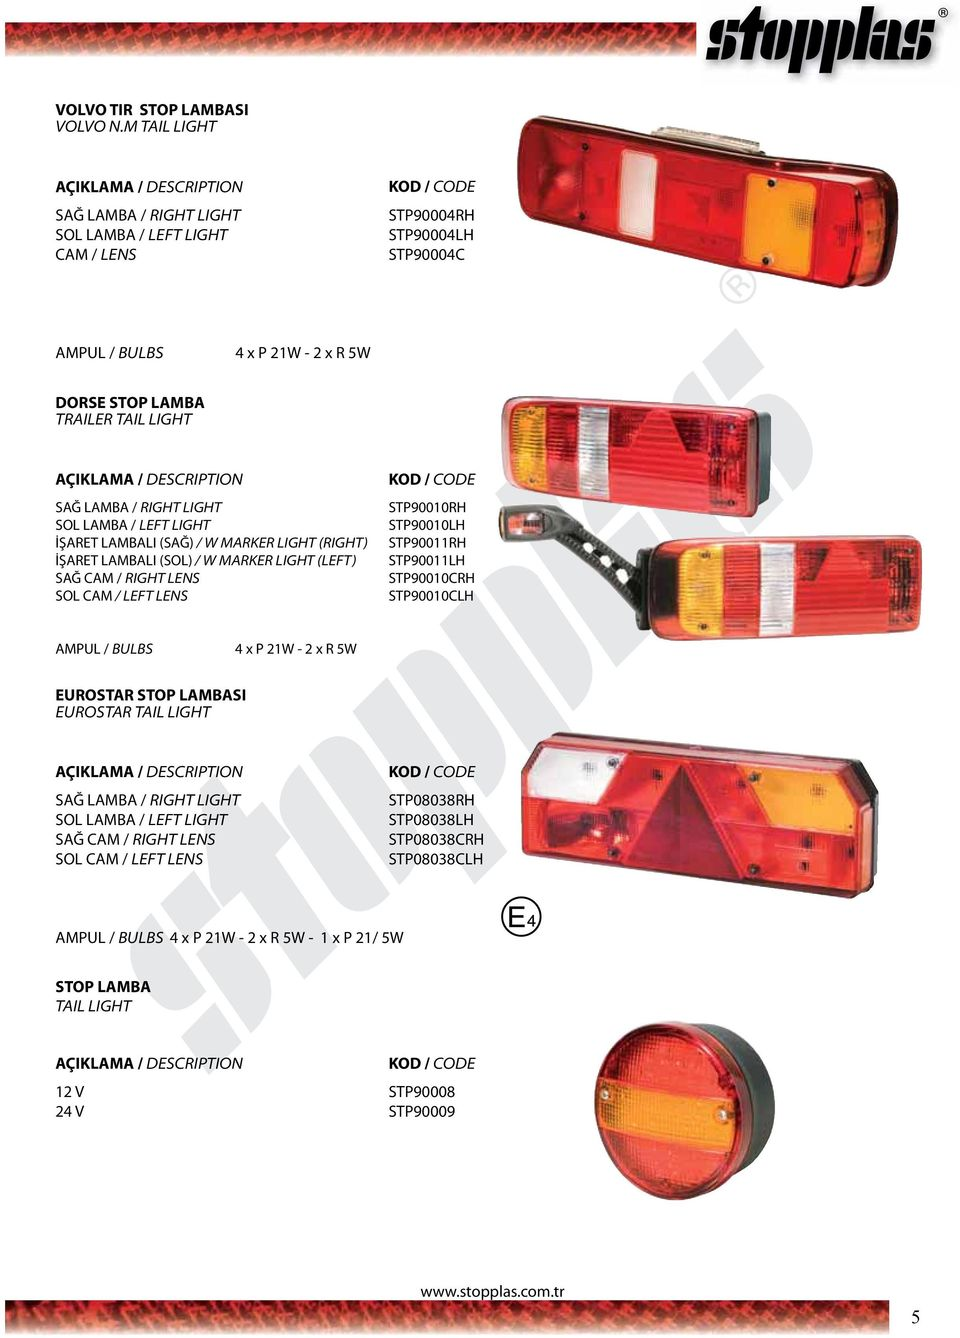 LAMBALI (SAĞ) / W MARKER LIGHT (RIGHT) İŞARET LAMBALI (SOL) / W MARKER LIGHT (LEFT) SAĞ CAM / RIGHT LENS SOL CAM / LEFT LENS STP90010RH STP90010LH STP90011RH